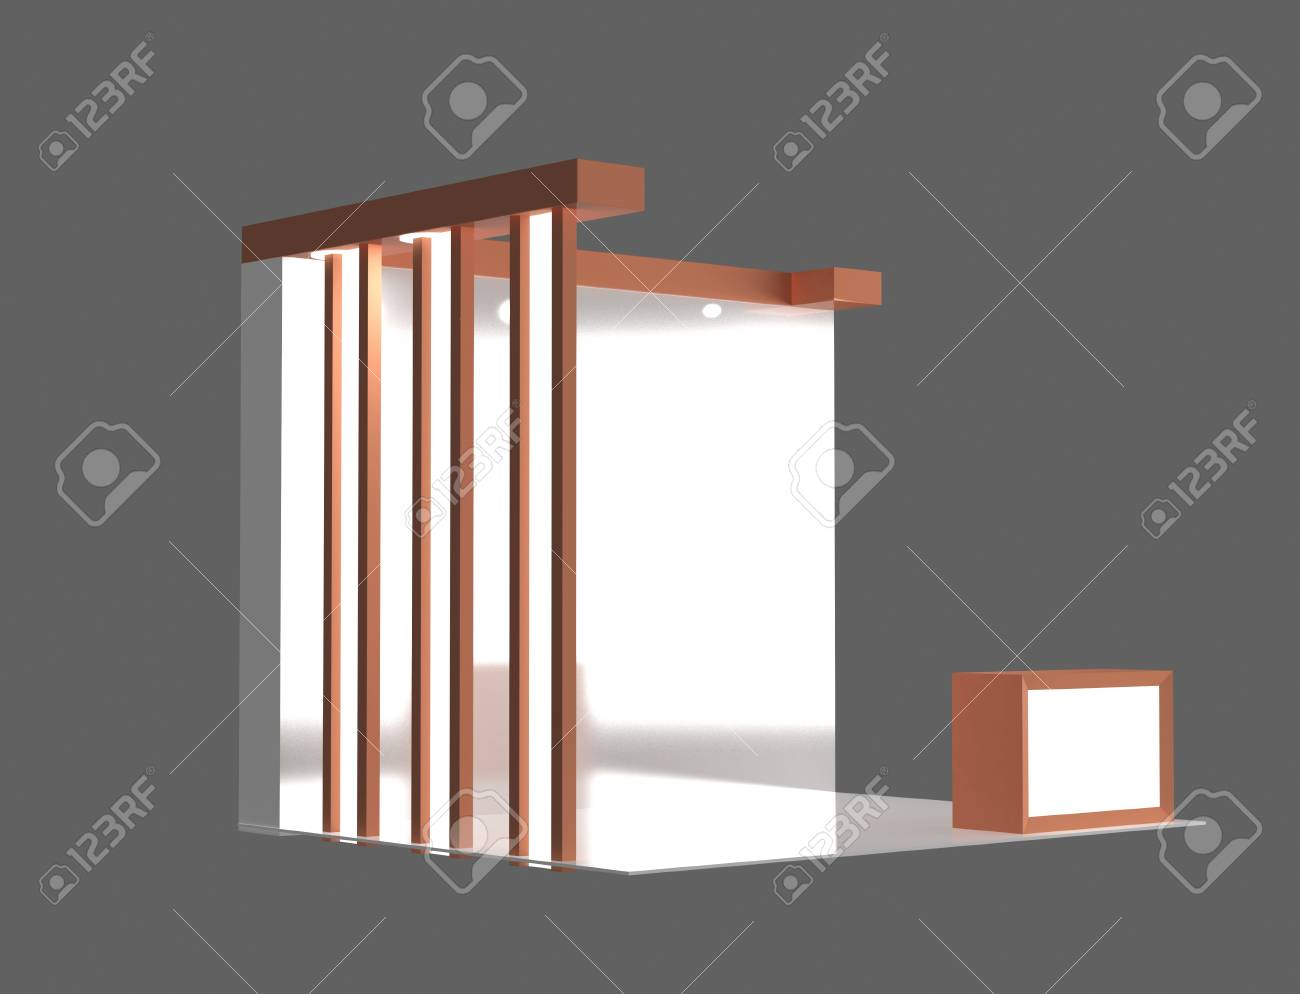 Exhibition Stand Free D Model : Reorange color d exhibition stand 3d rendering design stock photo